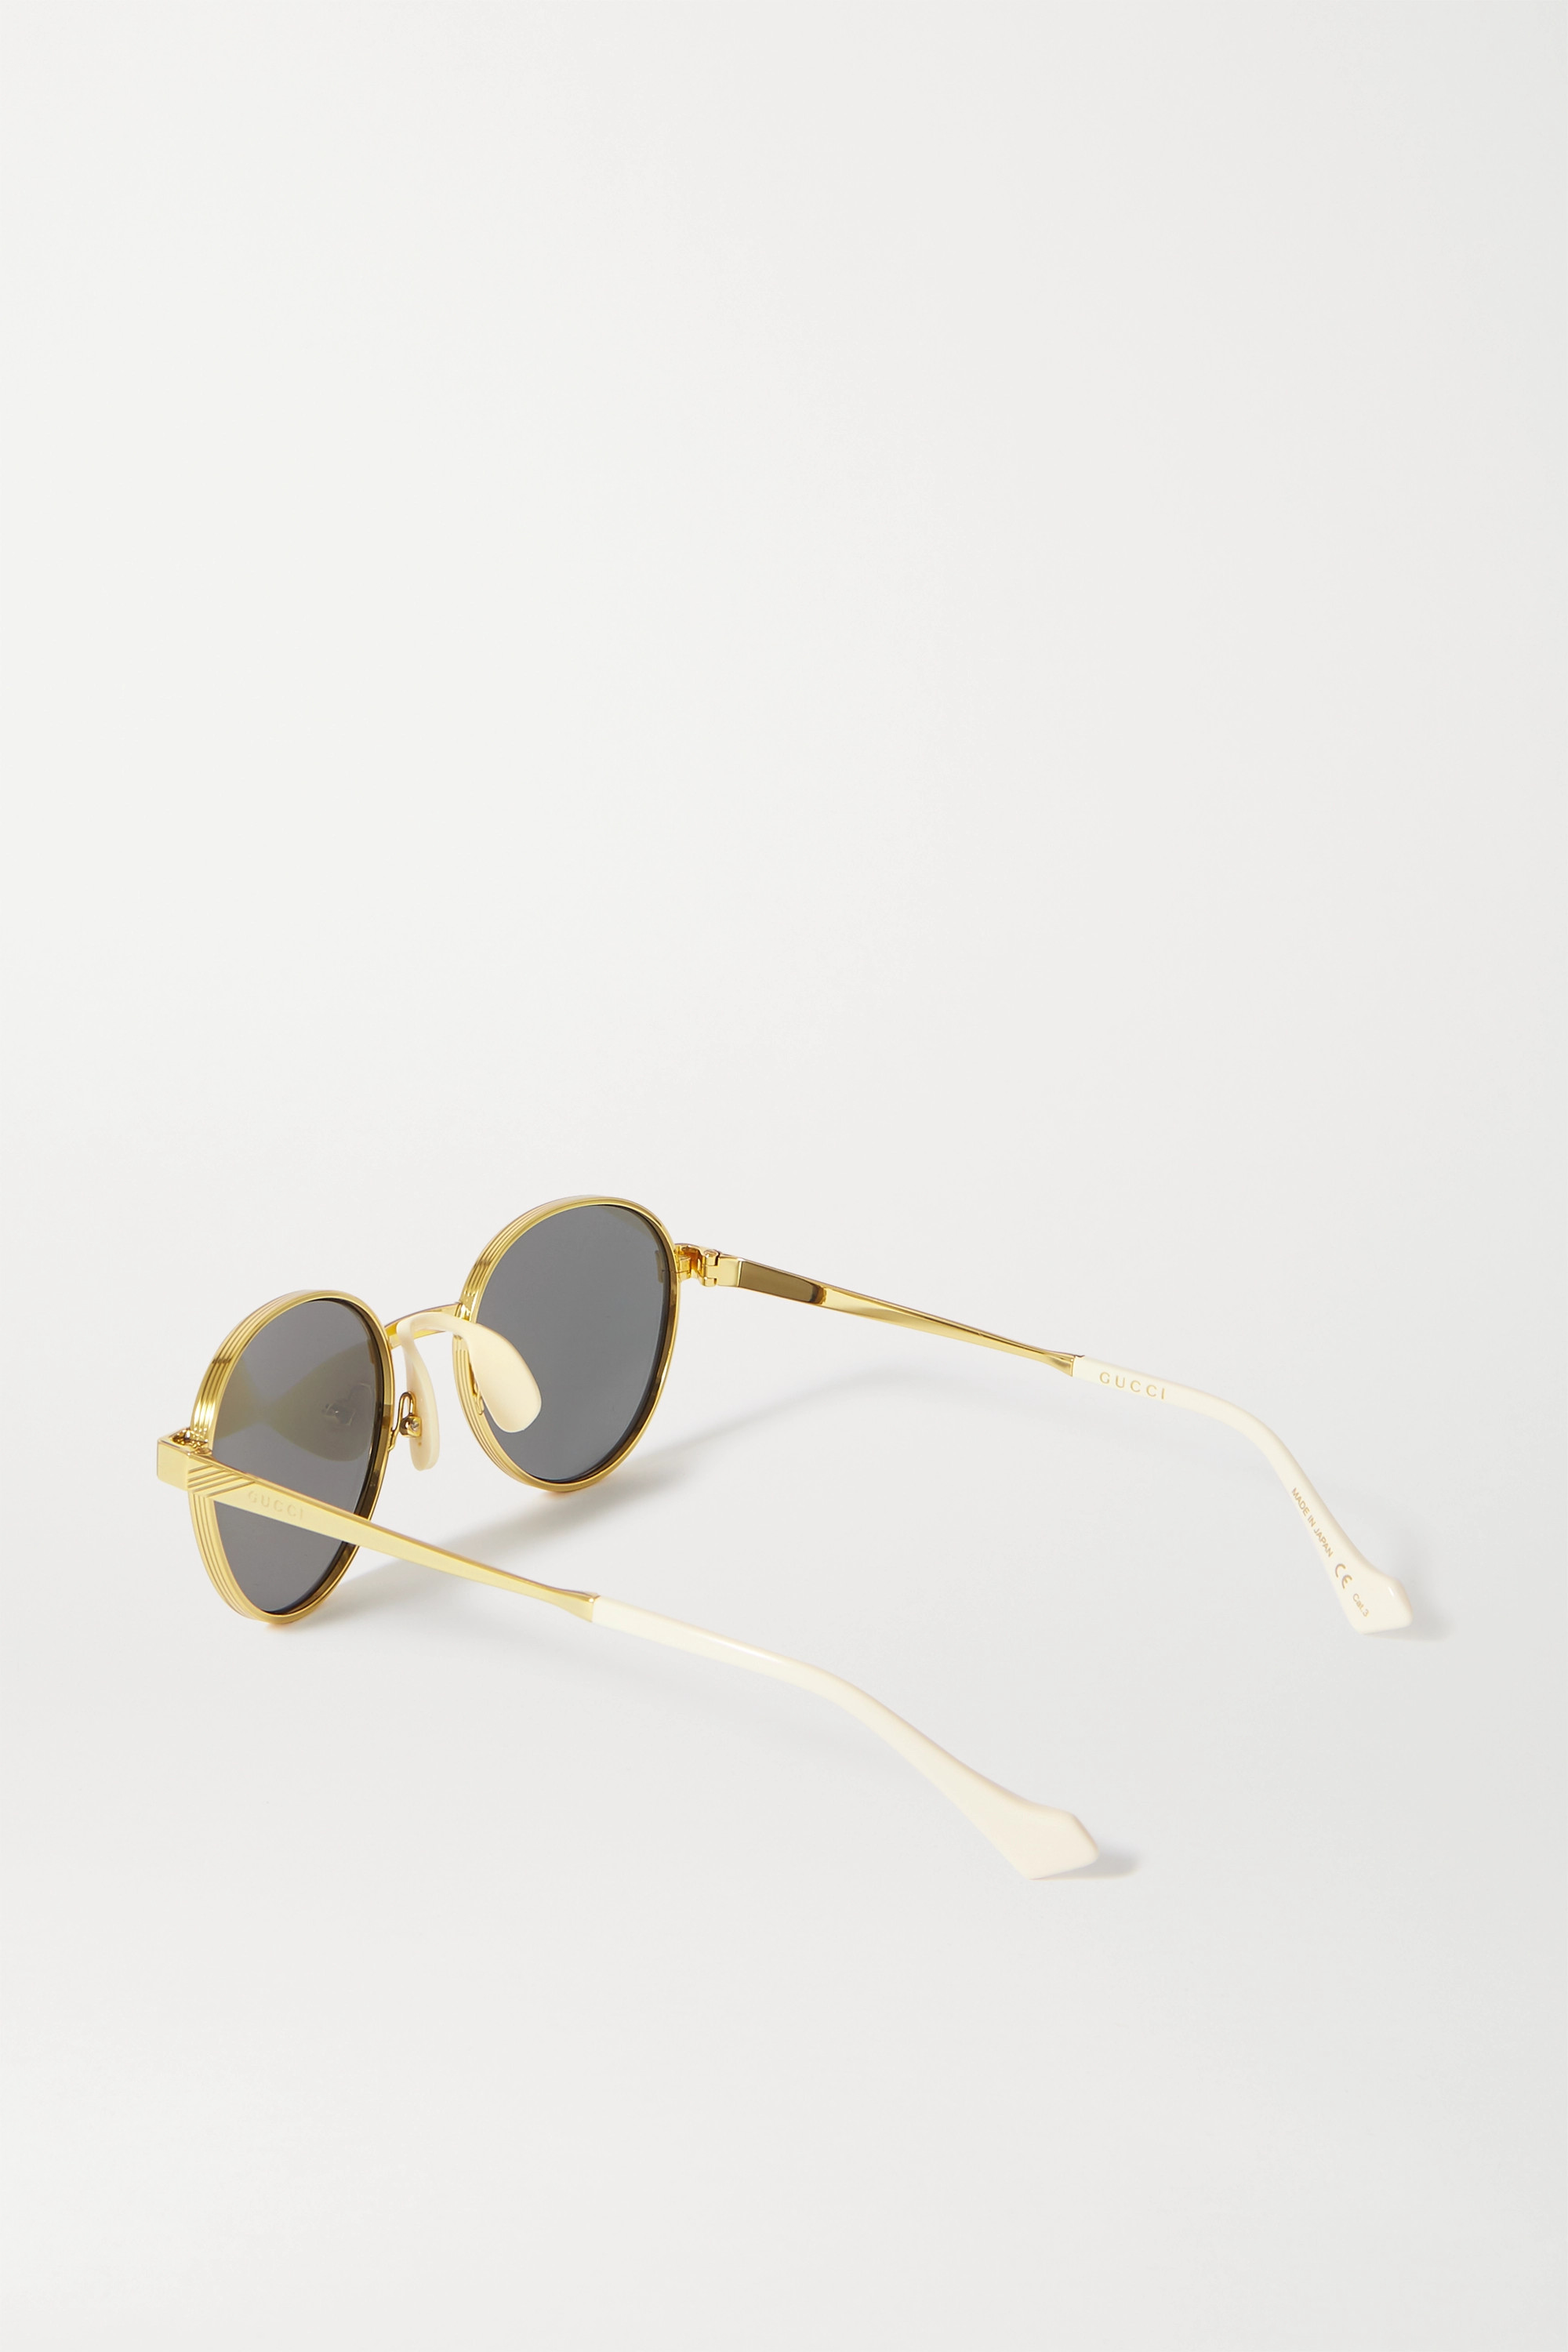 Gucci Round-frame gold-tone mirrored sunglasses